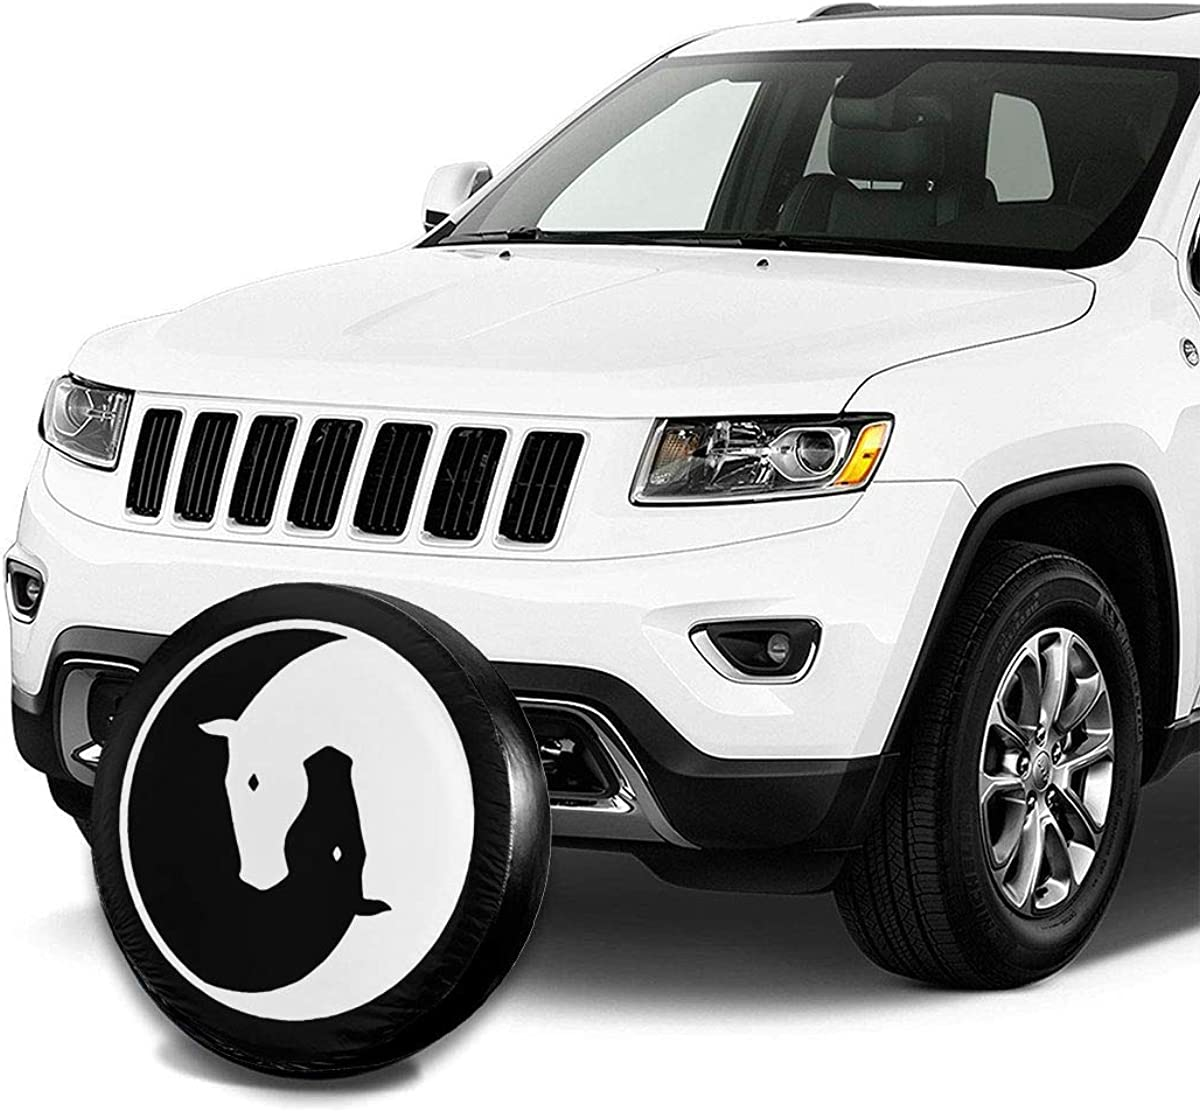 14,15,16,17 Inch Zhung Ree North American Lion Snow Mountain Waterproof Spare Tire Cover Fits for Trailer RV SUV Truck Camper Travel Trailer Accessories